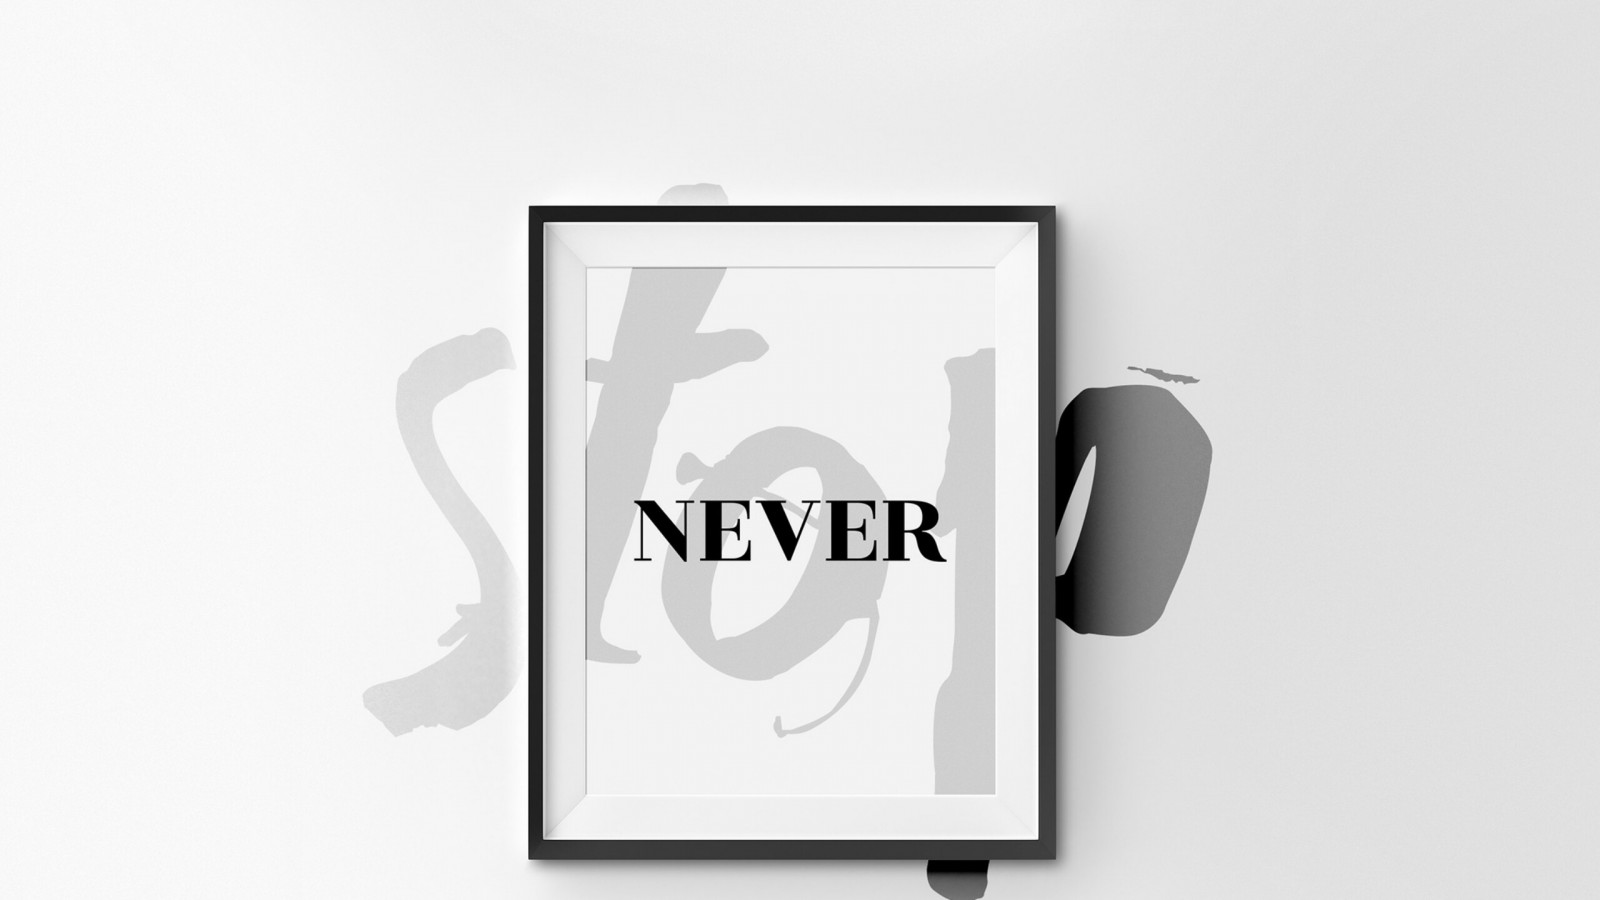 Never Stop Full HD Quote Wallpaper